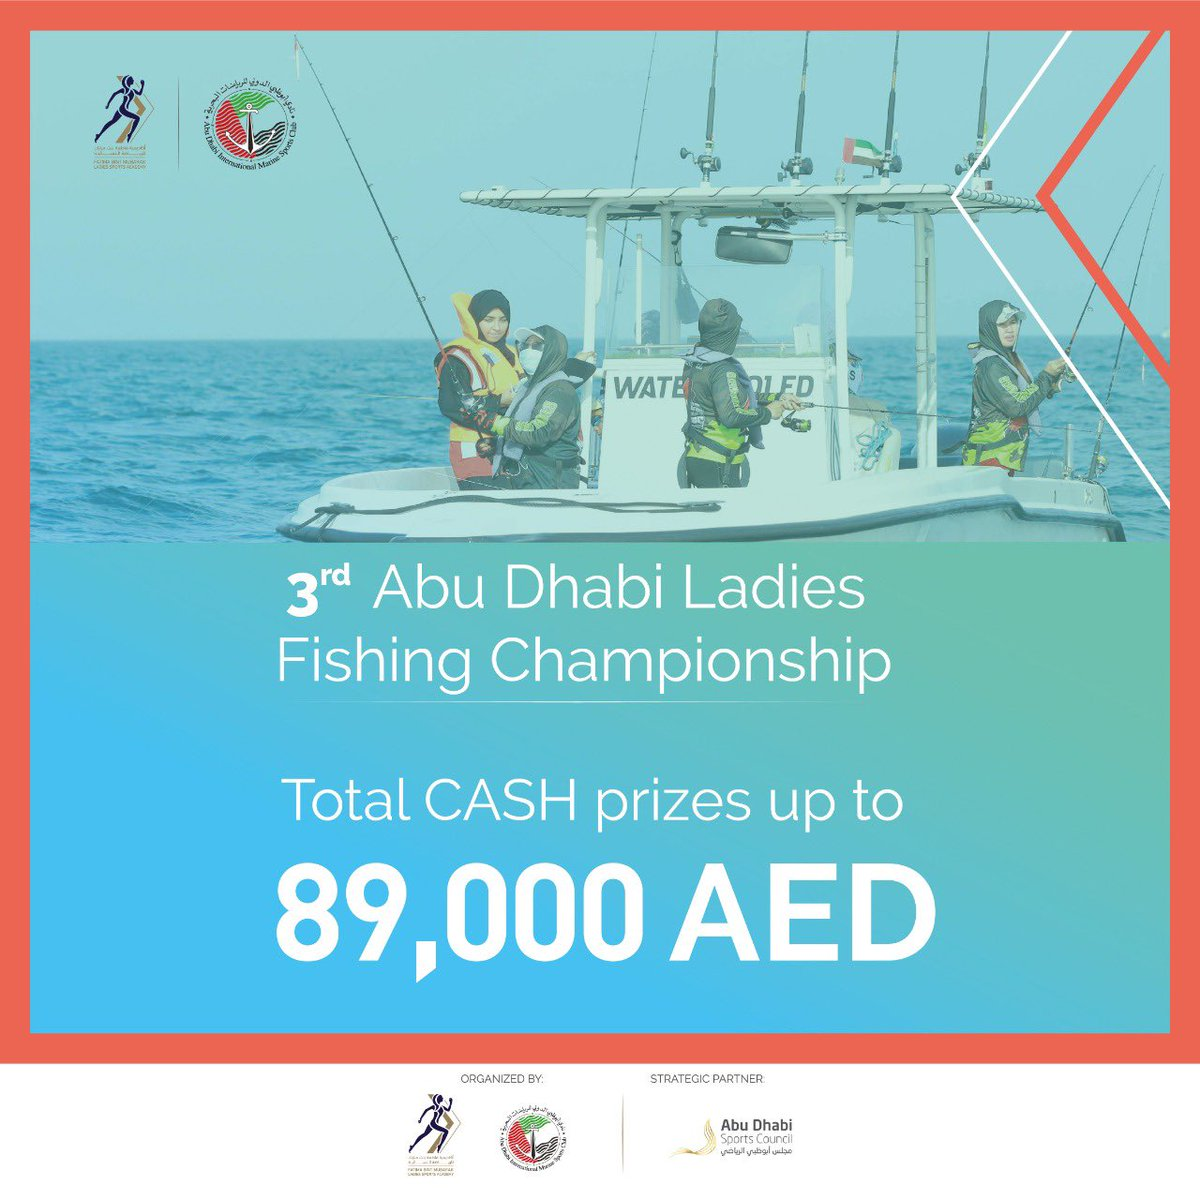 Incredible cash prizes await the winners of our 3rd Abu Dhabi Ladies Fishing Championship. Are you ready?  #MovingForward #UAESports #FBMA #AbuDhabi #InAbuDhabi #ADFBMA #fishing https://t.co/B11aTgDnHz